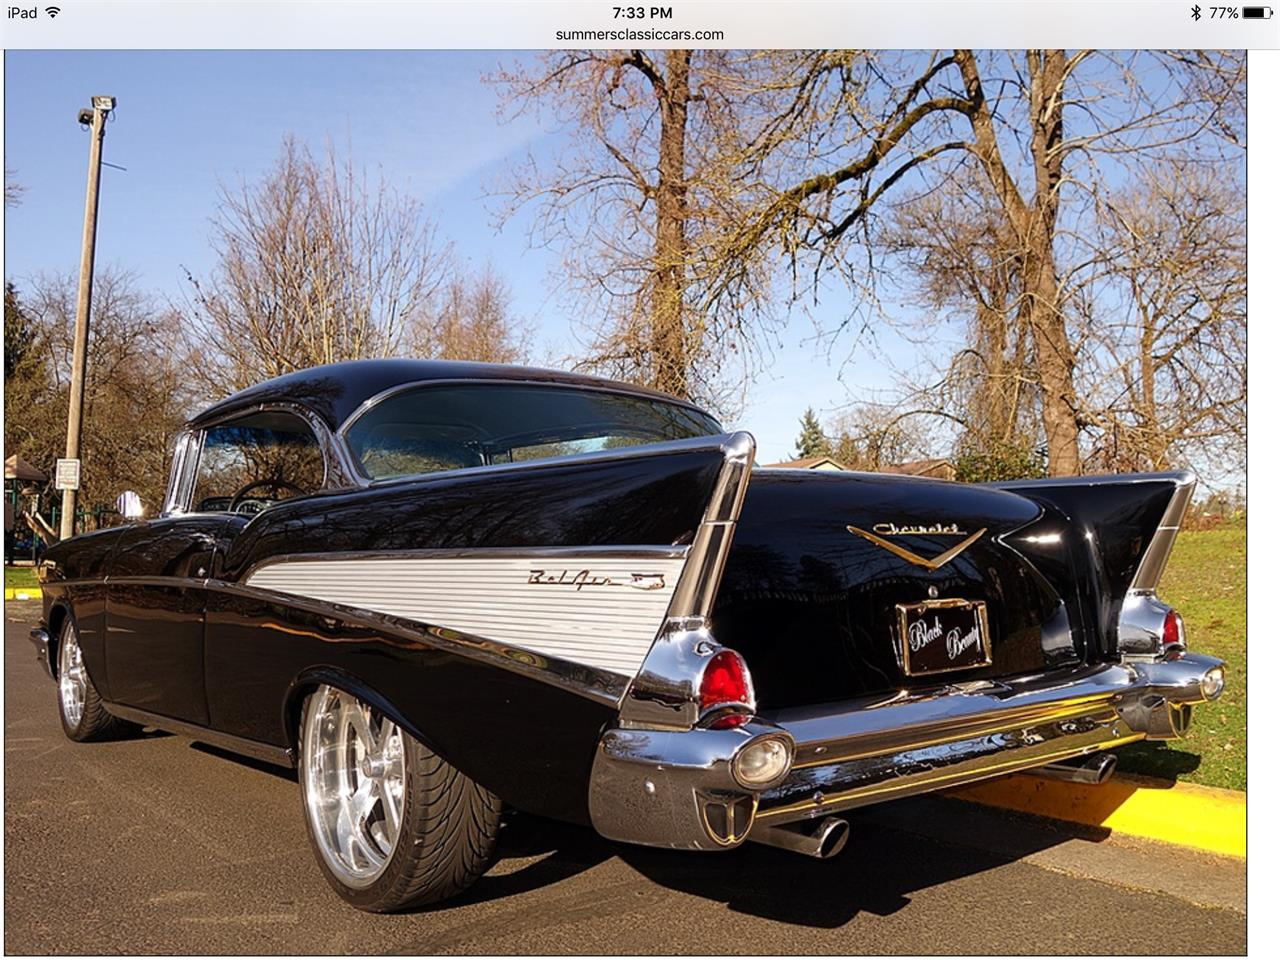 Large Picture of 1957 Chevrolet Bel Air located in Connecticut - $79,000.00 Offered by a Private Seller - Q2Q9